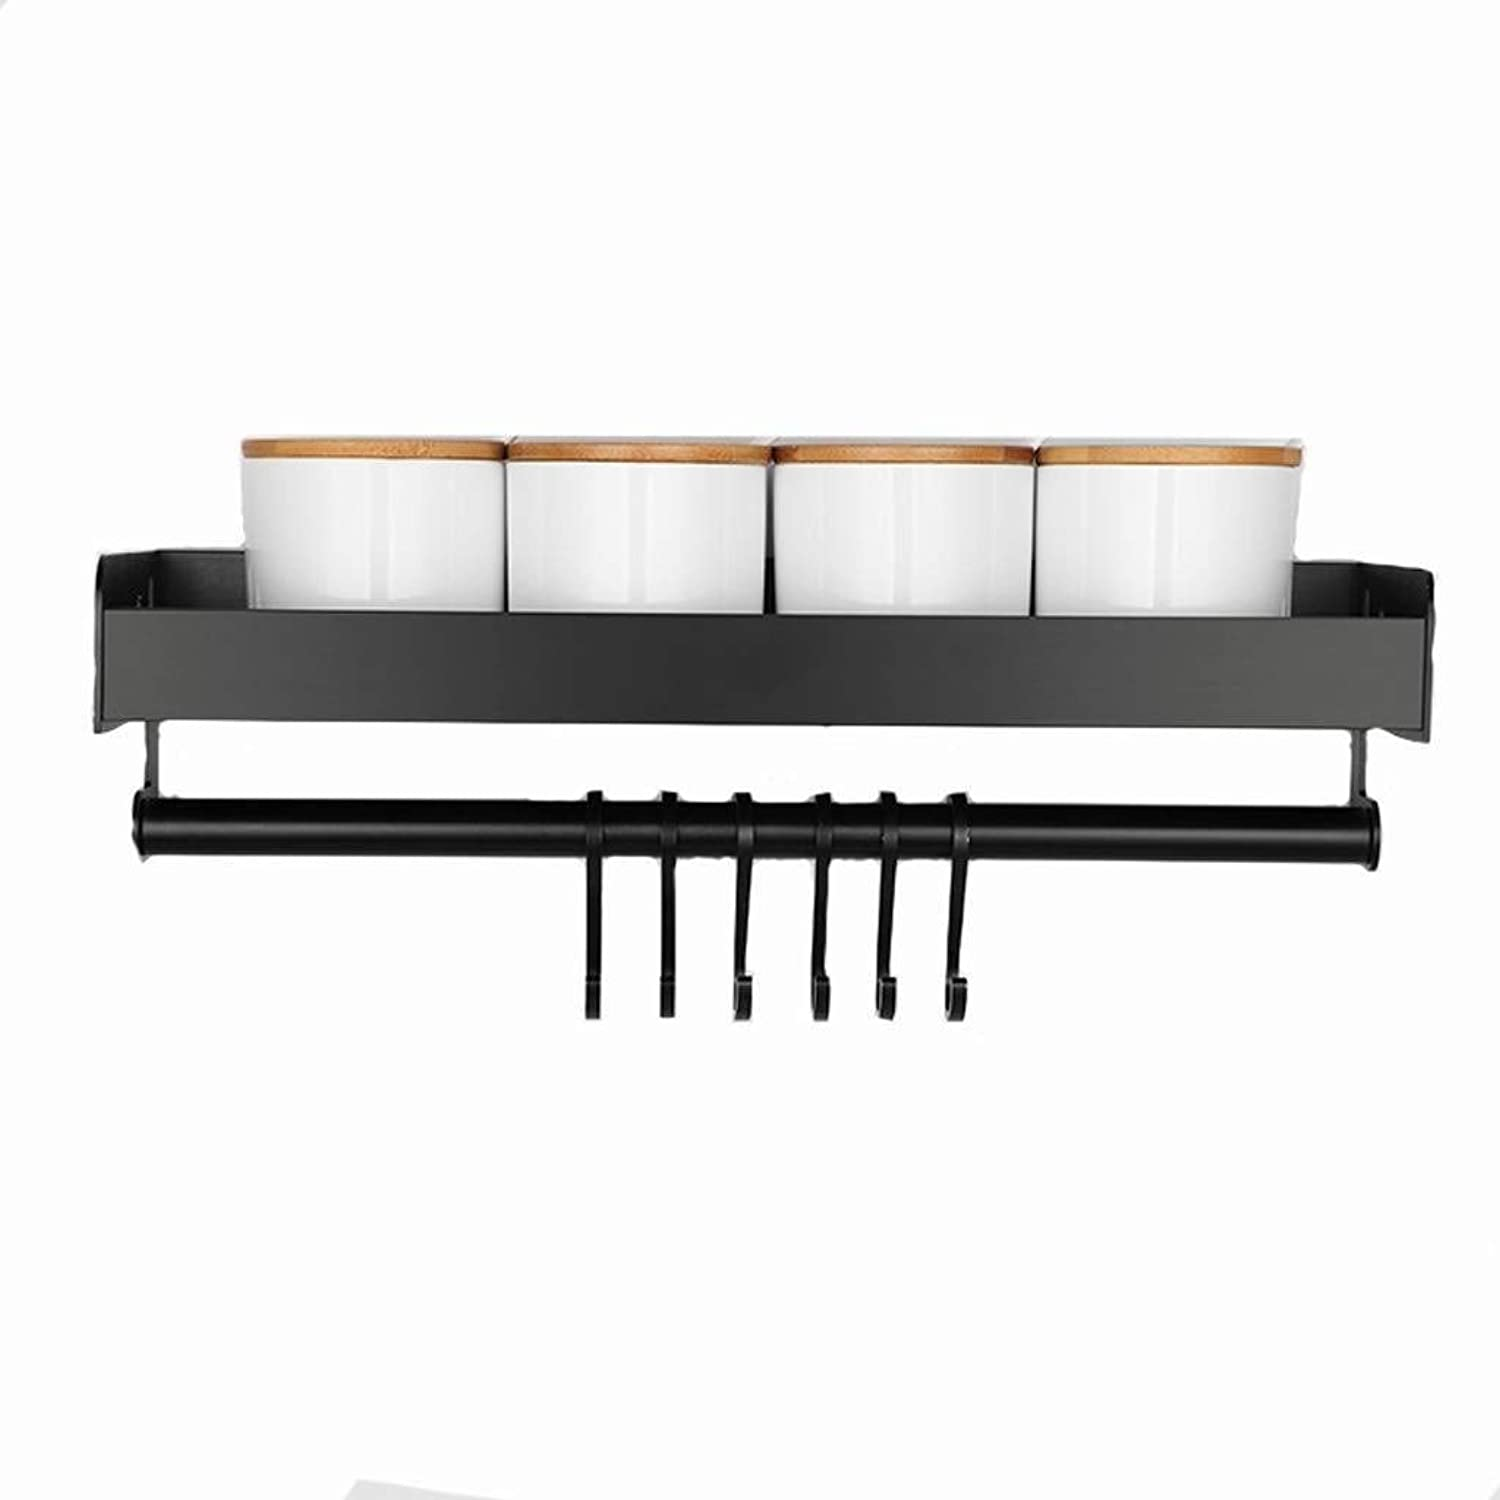 Spice Rack- Punch Corner Kitchen Shelf Wall-Mounted Storage Rack Knife Holder redating Seasoning Shelf Space with Hook ZXMDMZ (Size   50)